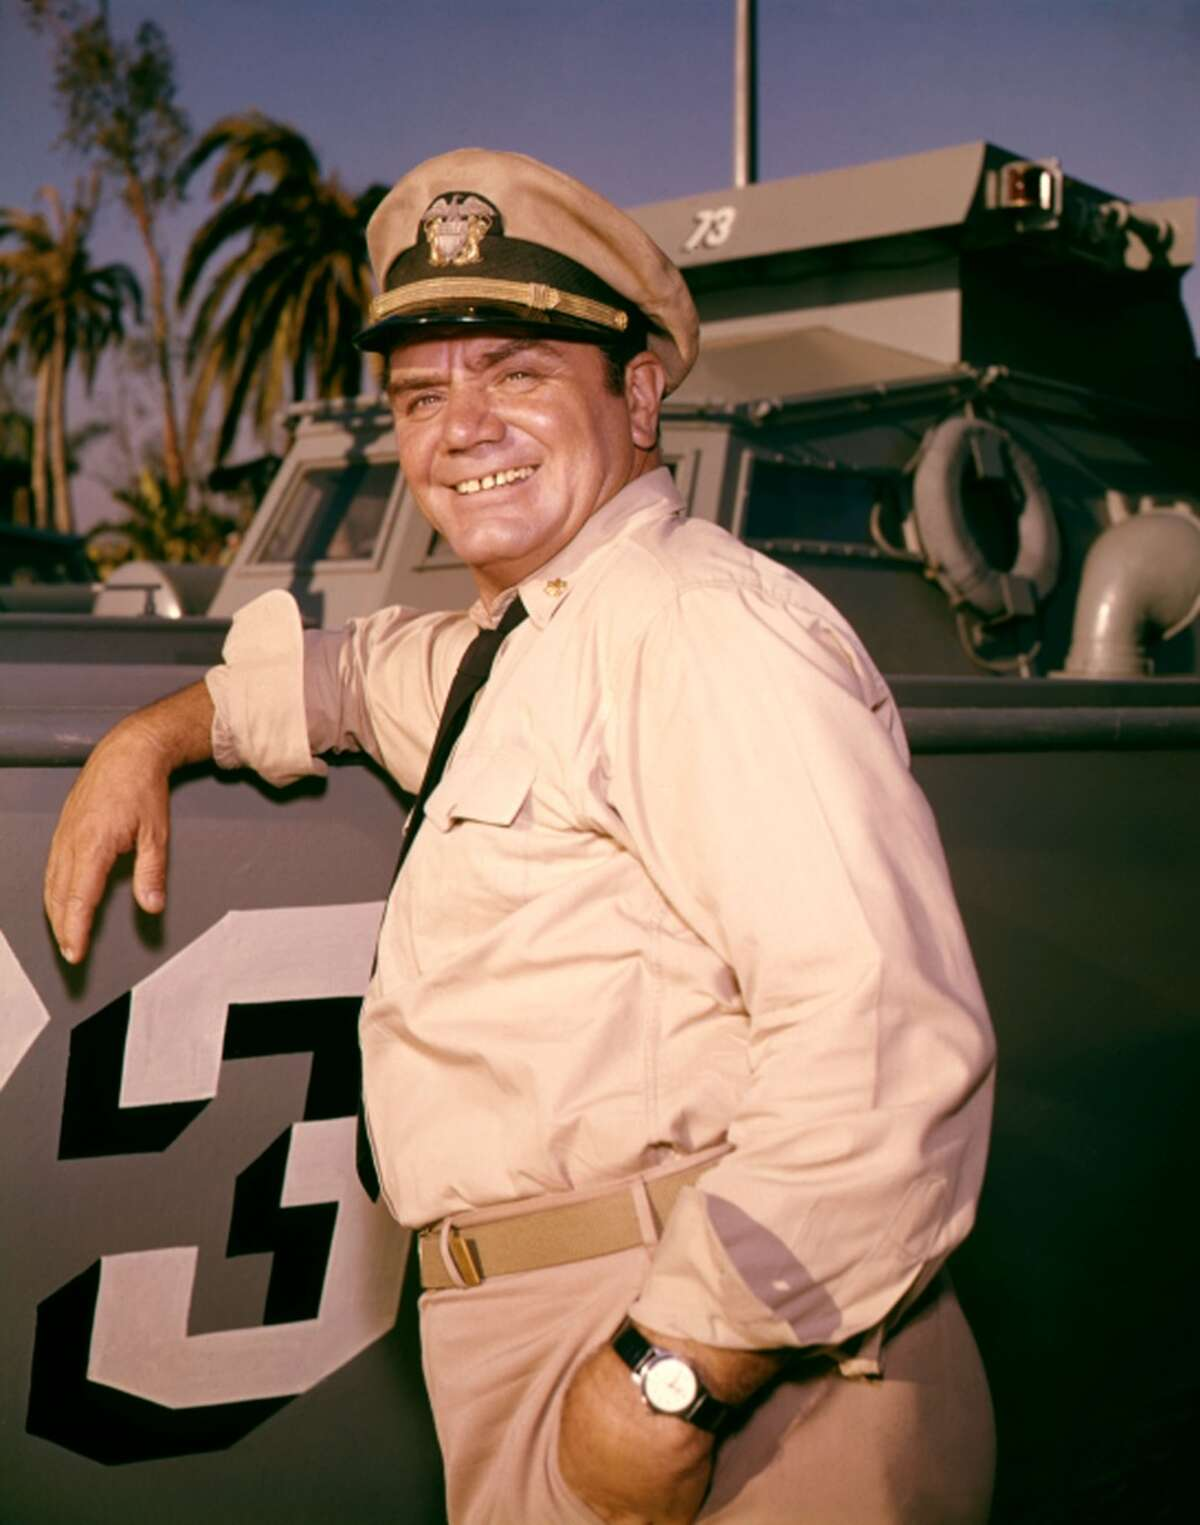 Ernest Borgnine didn't just play a Navy man on TV; he served in the U.S. Navy for nearly ten years, re-enlisting after the attack on Pearl Harbor in 1941. The Hamden native went on to enjoy a successful acting career after coming home in 1945, evencaptaining a World War II PTboat in WWII sitcom McHale's Navy.